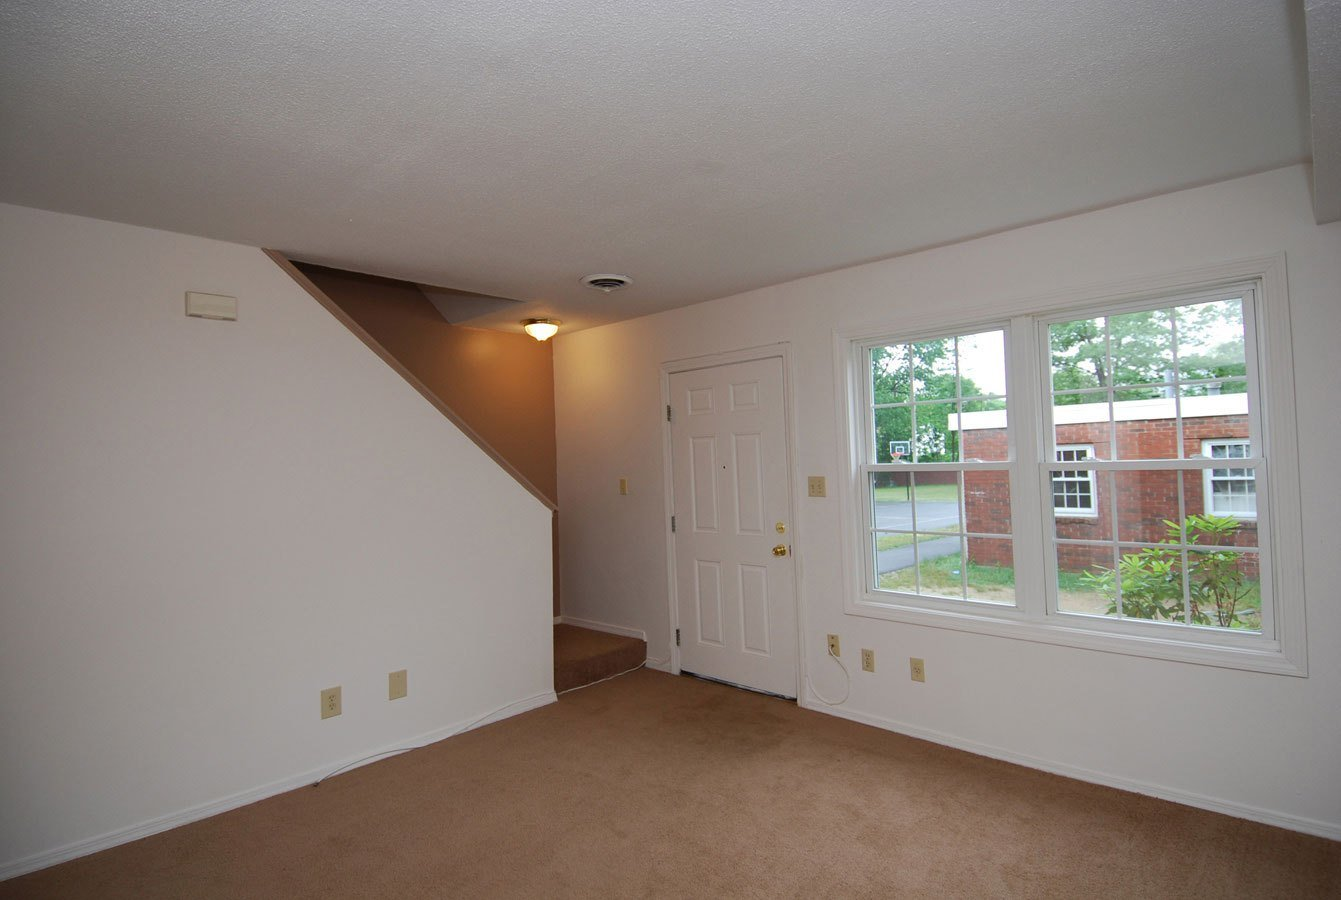 Best 2 Bedroom Apartment In Manchester Nh At Wellington Terrace Apartments With Pictures